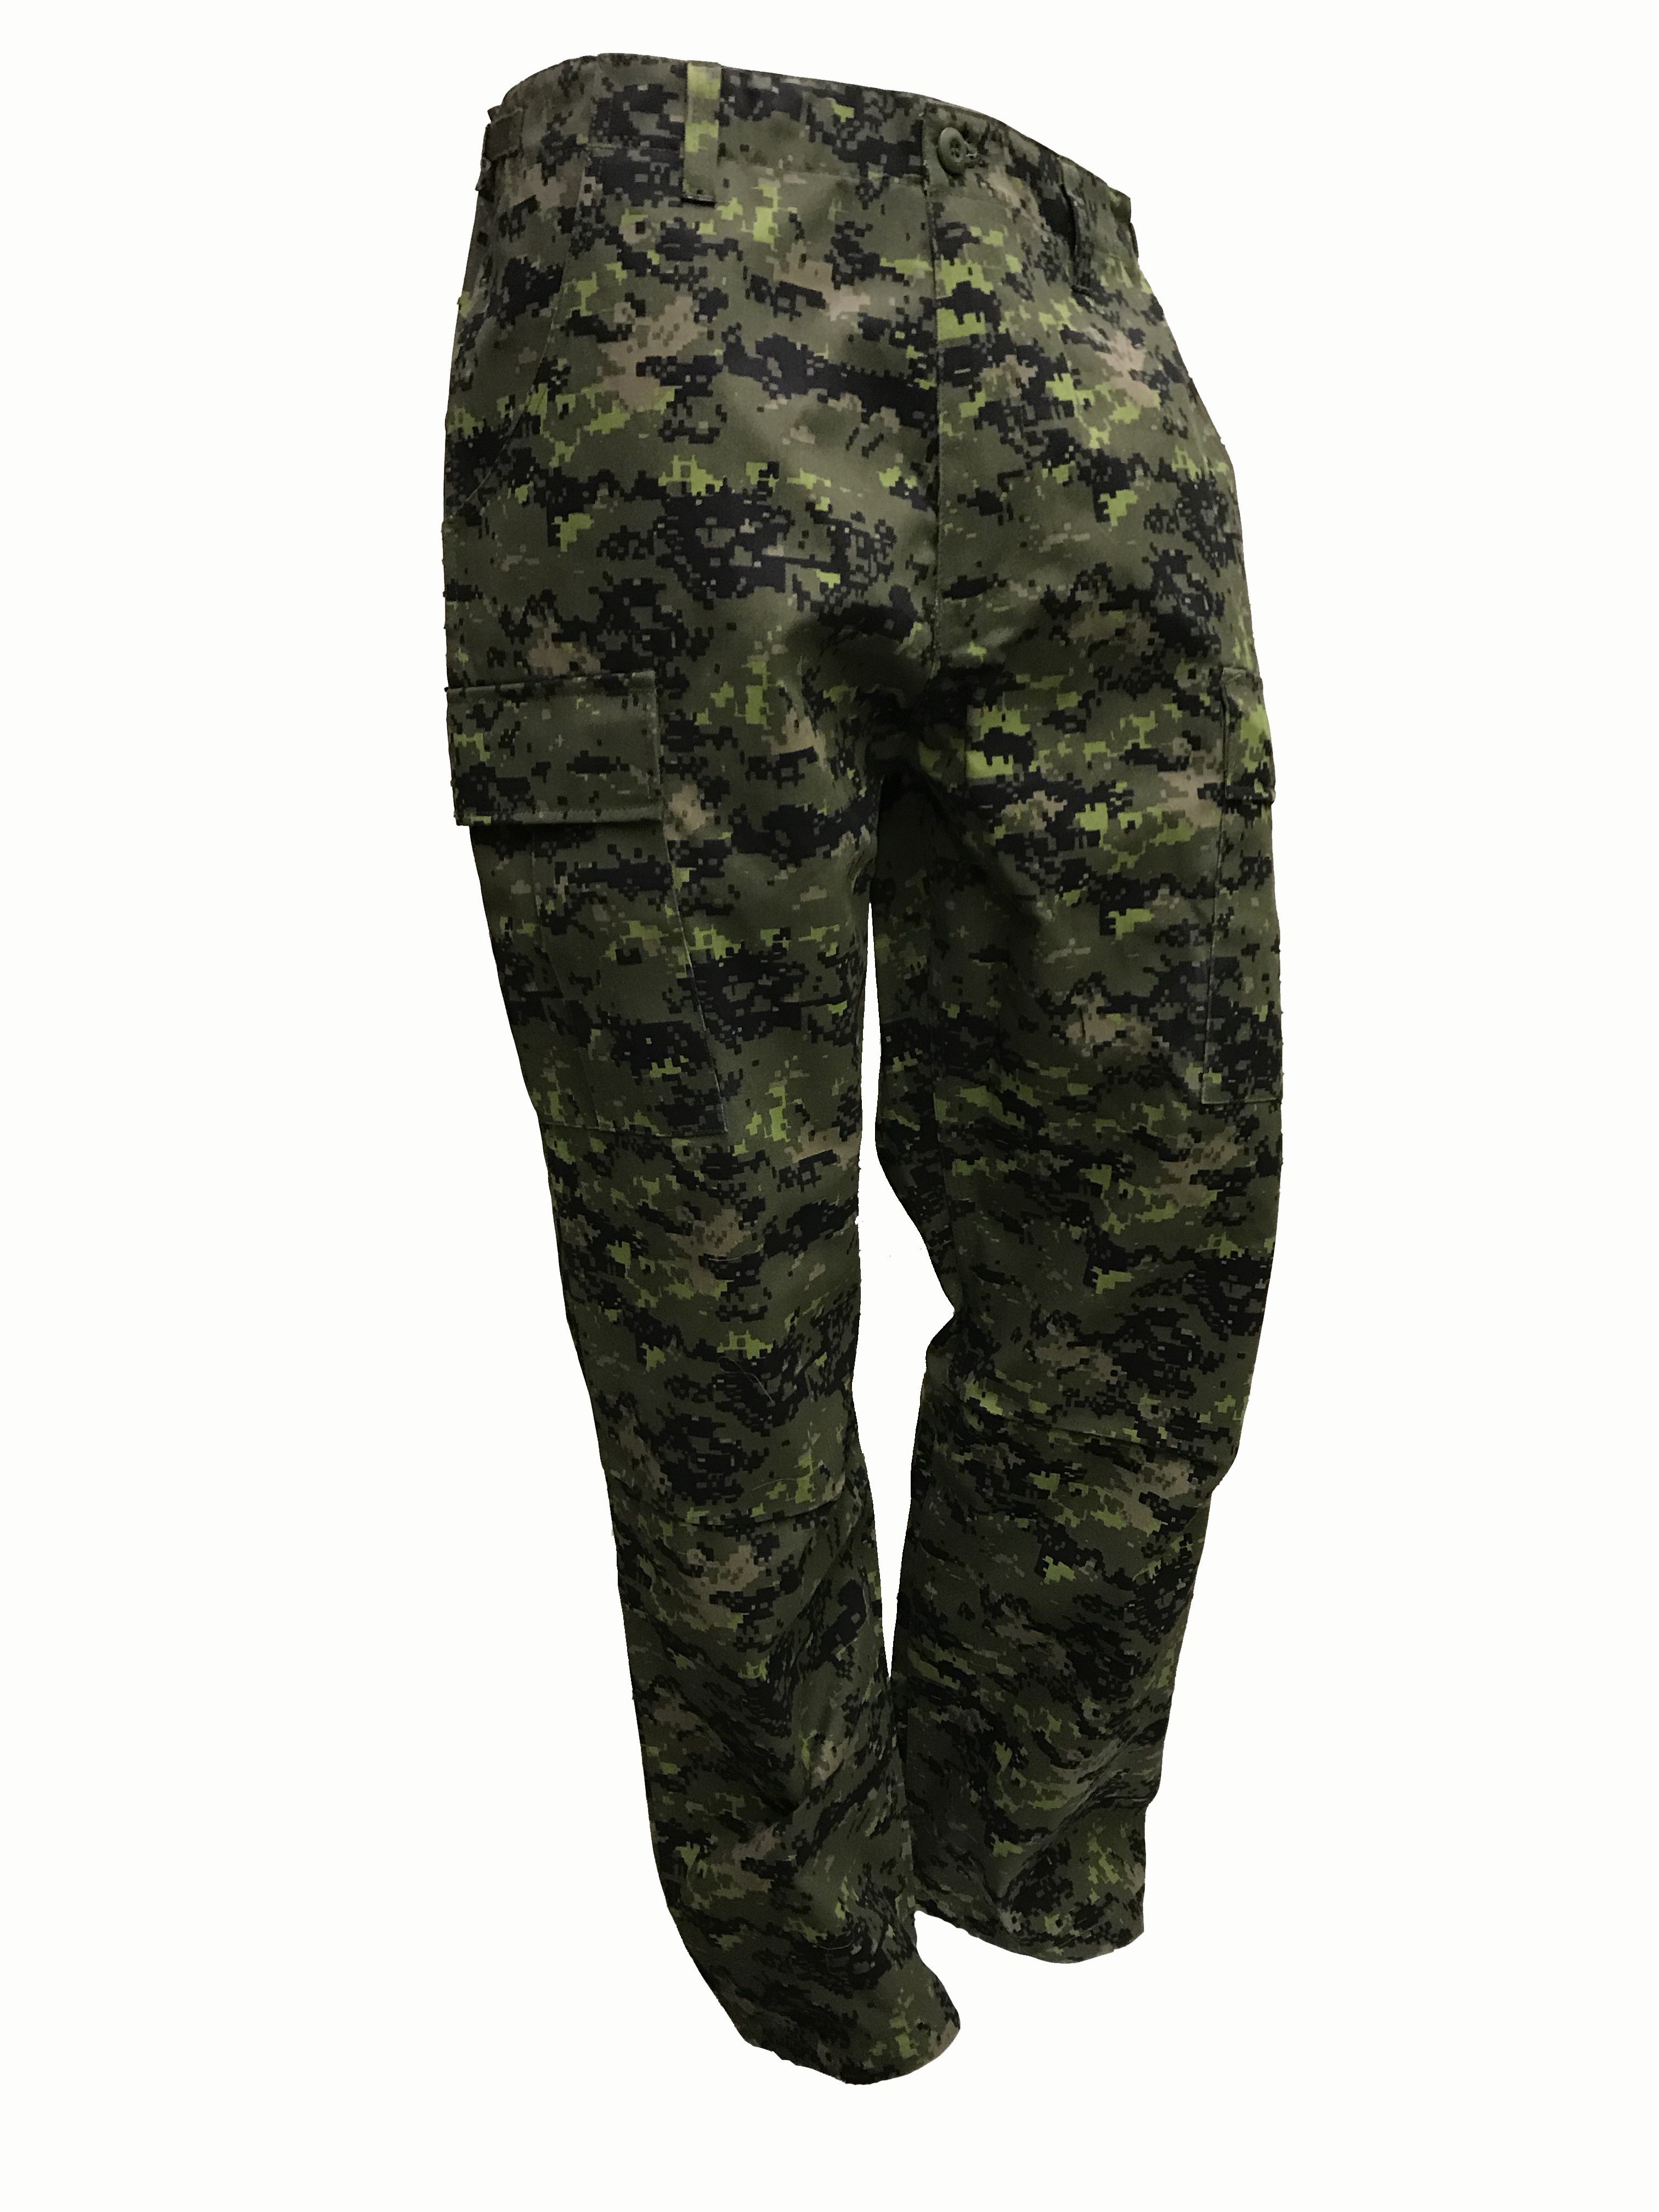 SGS Canadian digital cargo pant